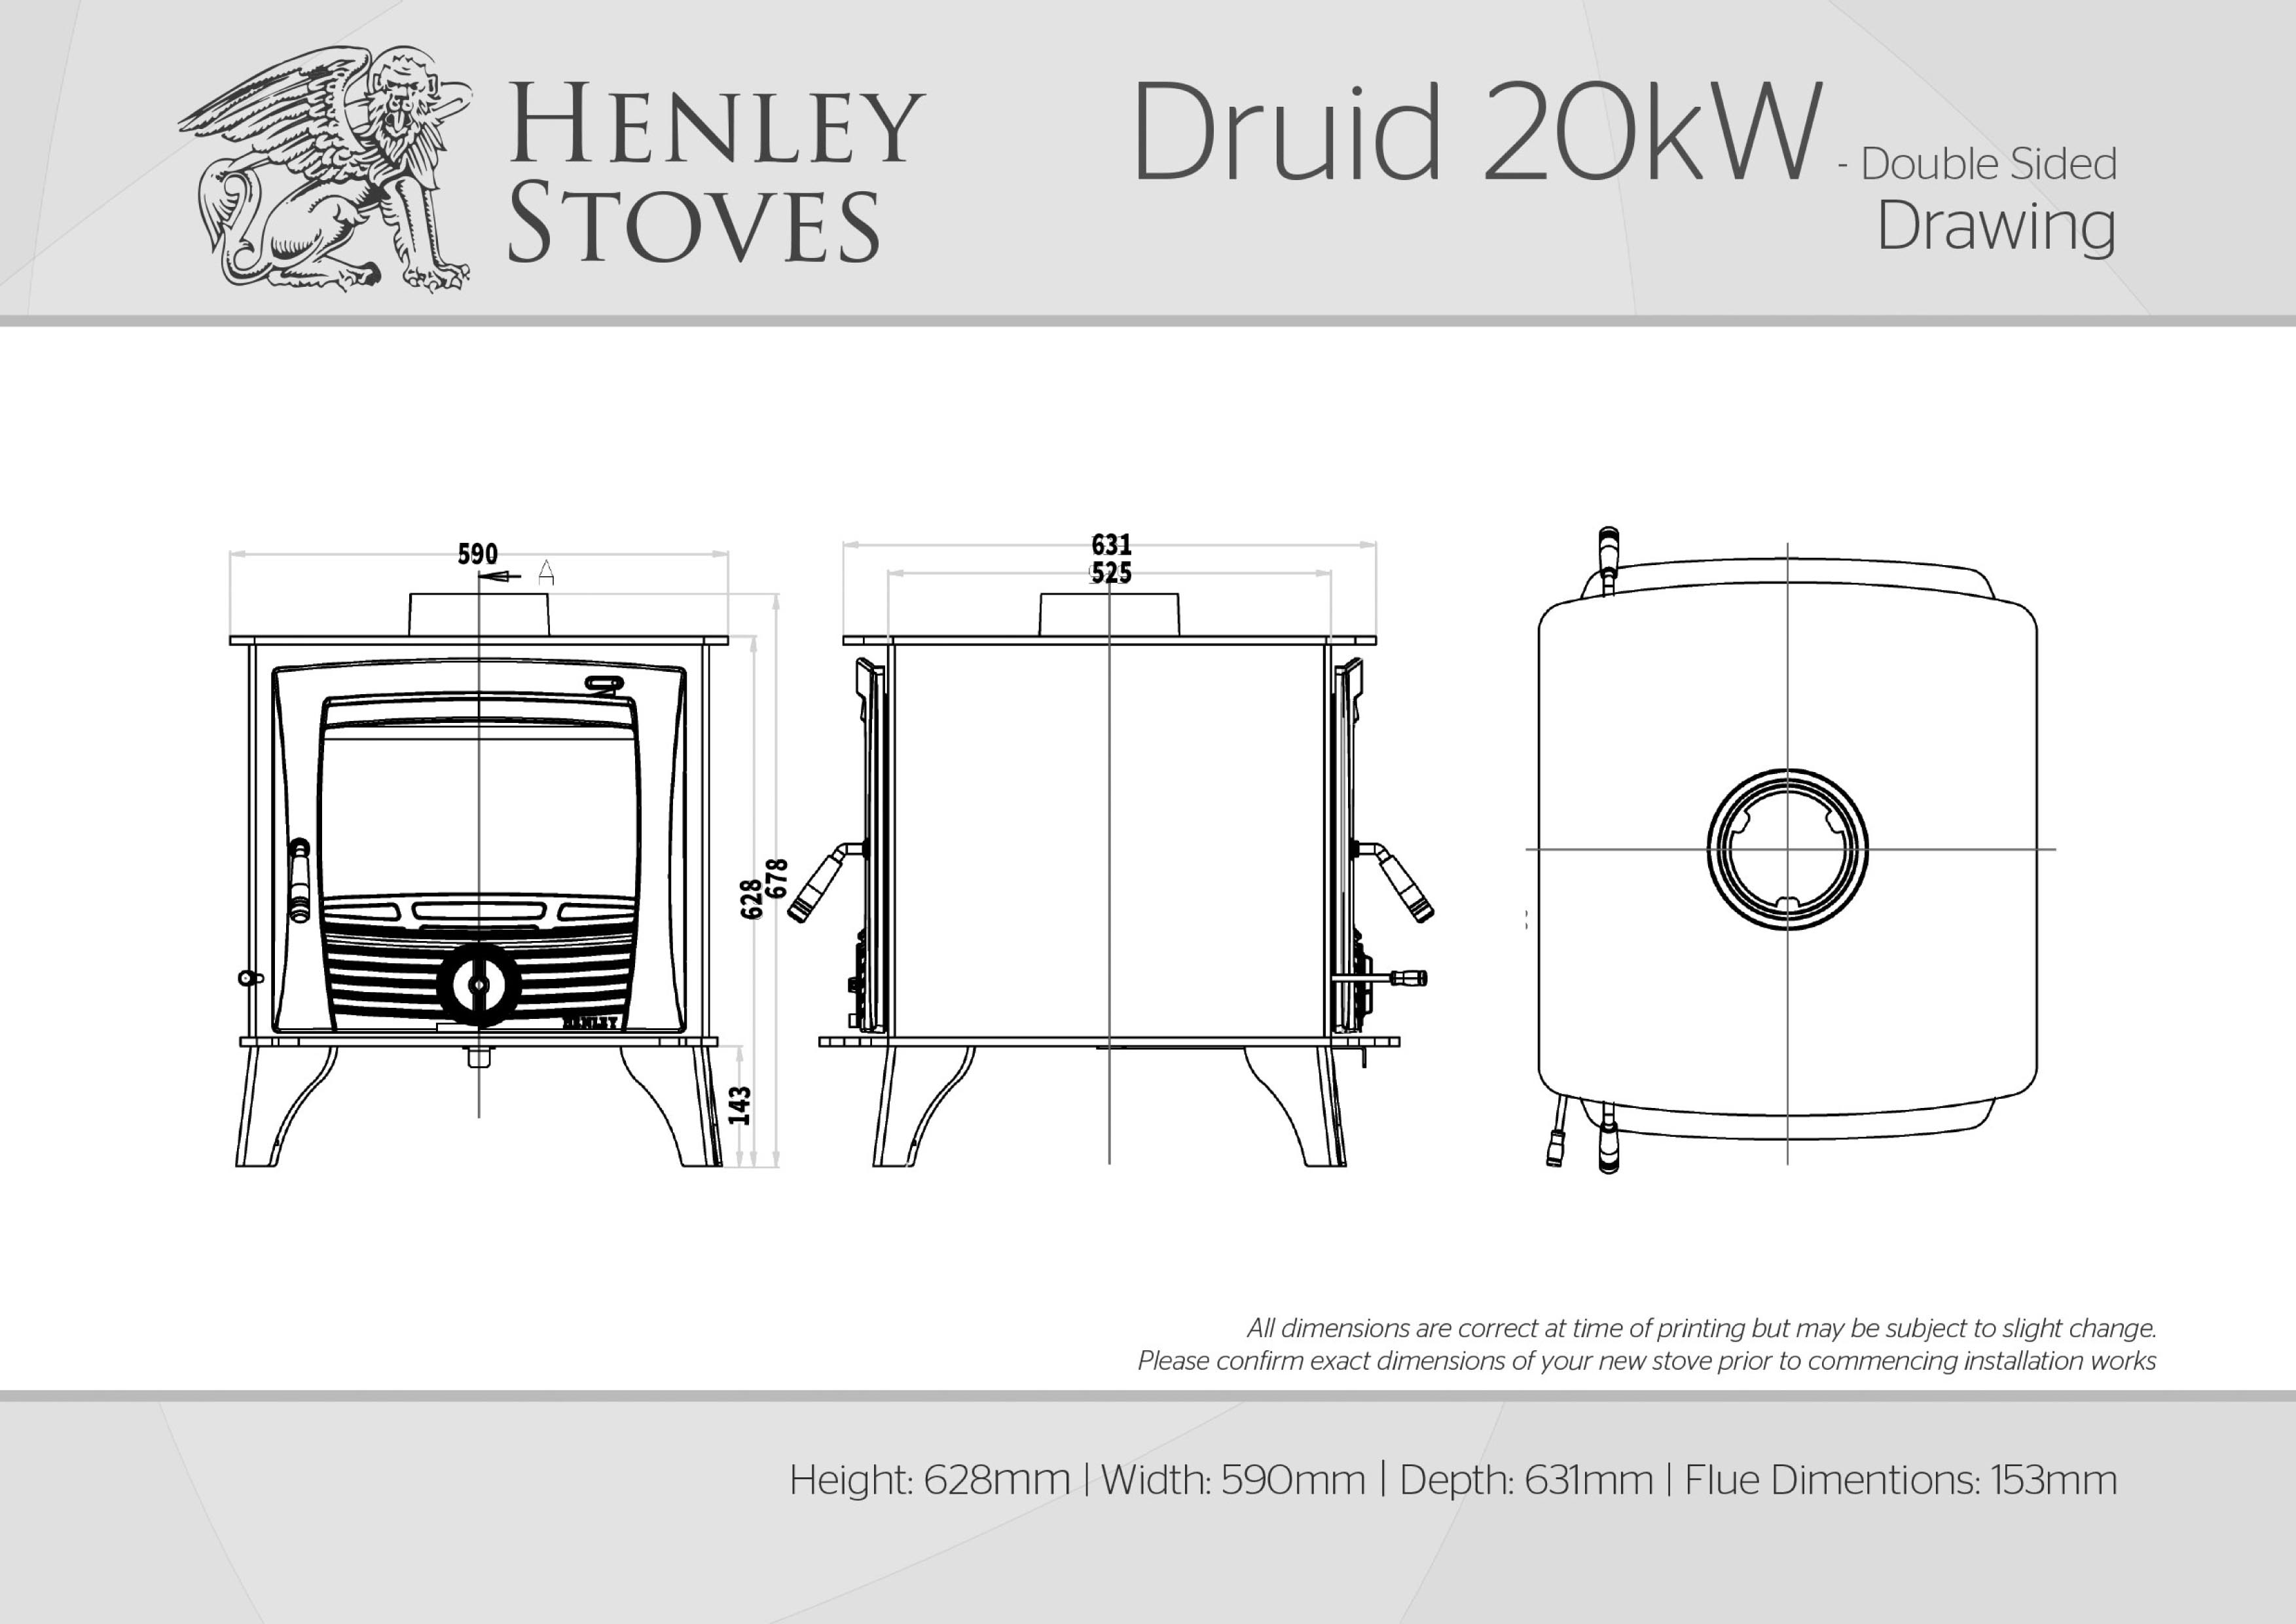 Ds Stoves Diagram Block And Schematic Diagrams Wiring Henley Druid 20kw Double Sided Kildare Ireland Rh Kildarestoves Ie Afterburner Circulator